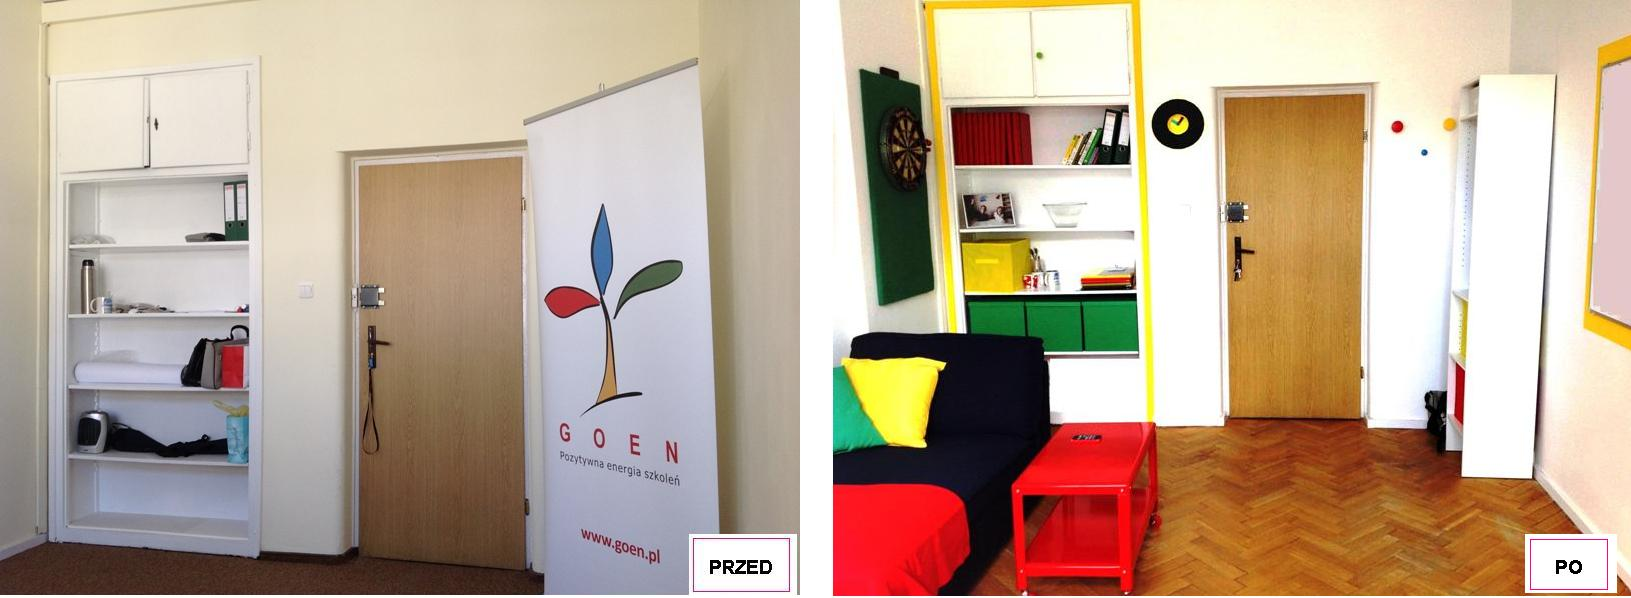 7 projekt wnetrza male kolorowe biuro interior design small colorful office google style forelementspl